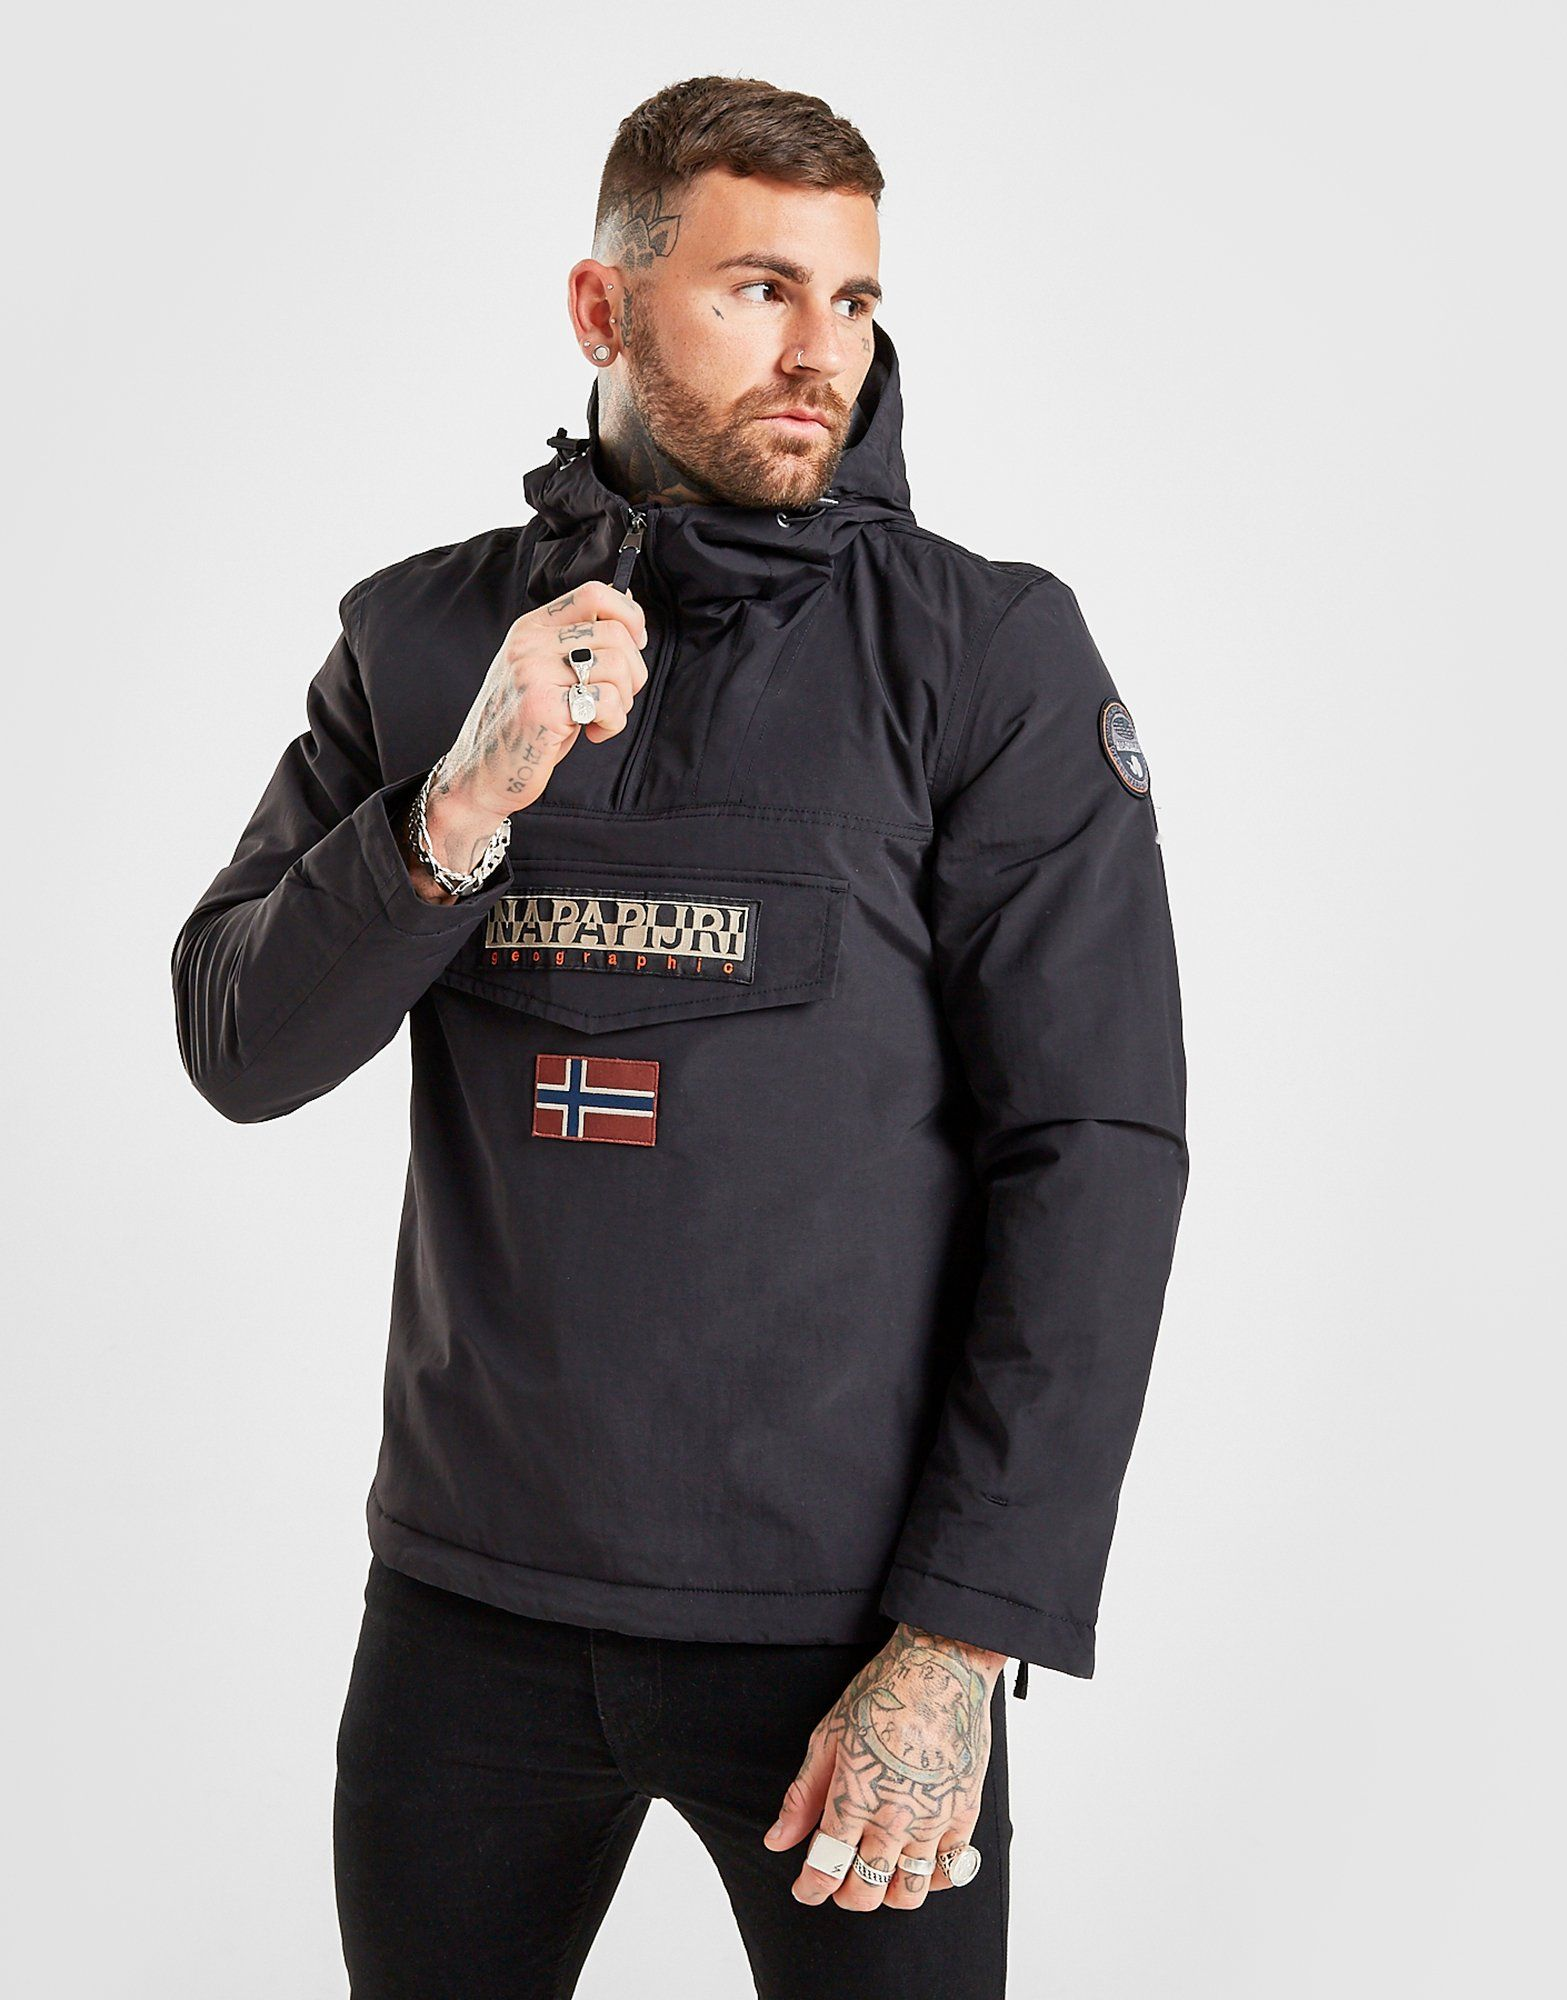 Tassen Voorjaar 2018 : Napapijri rainforest winter padded jacket jd sports